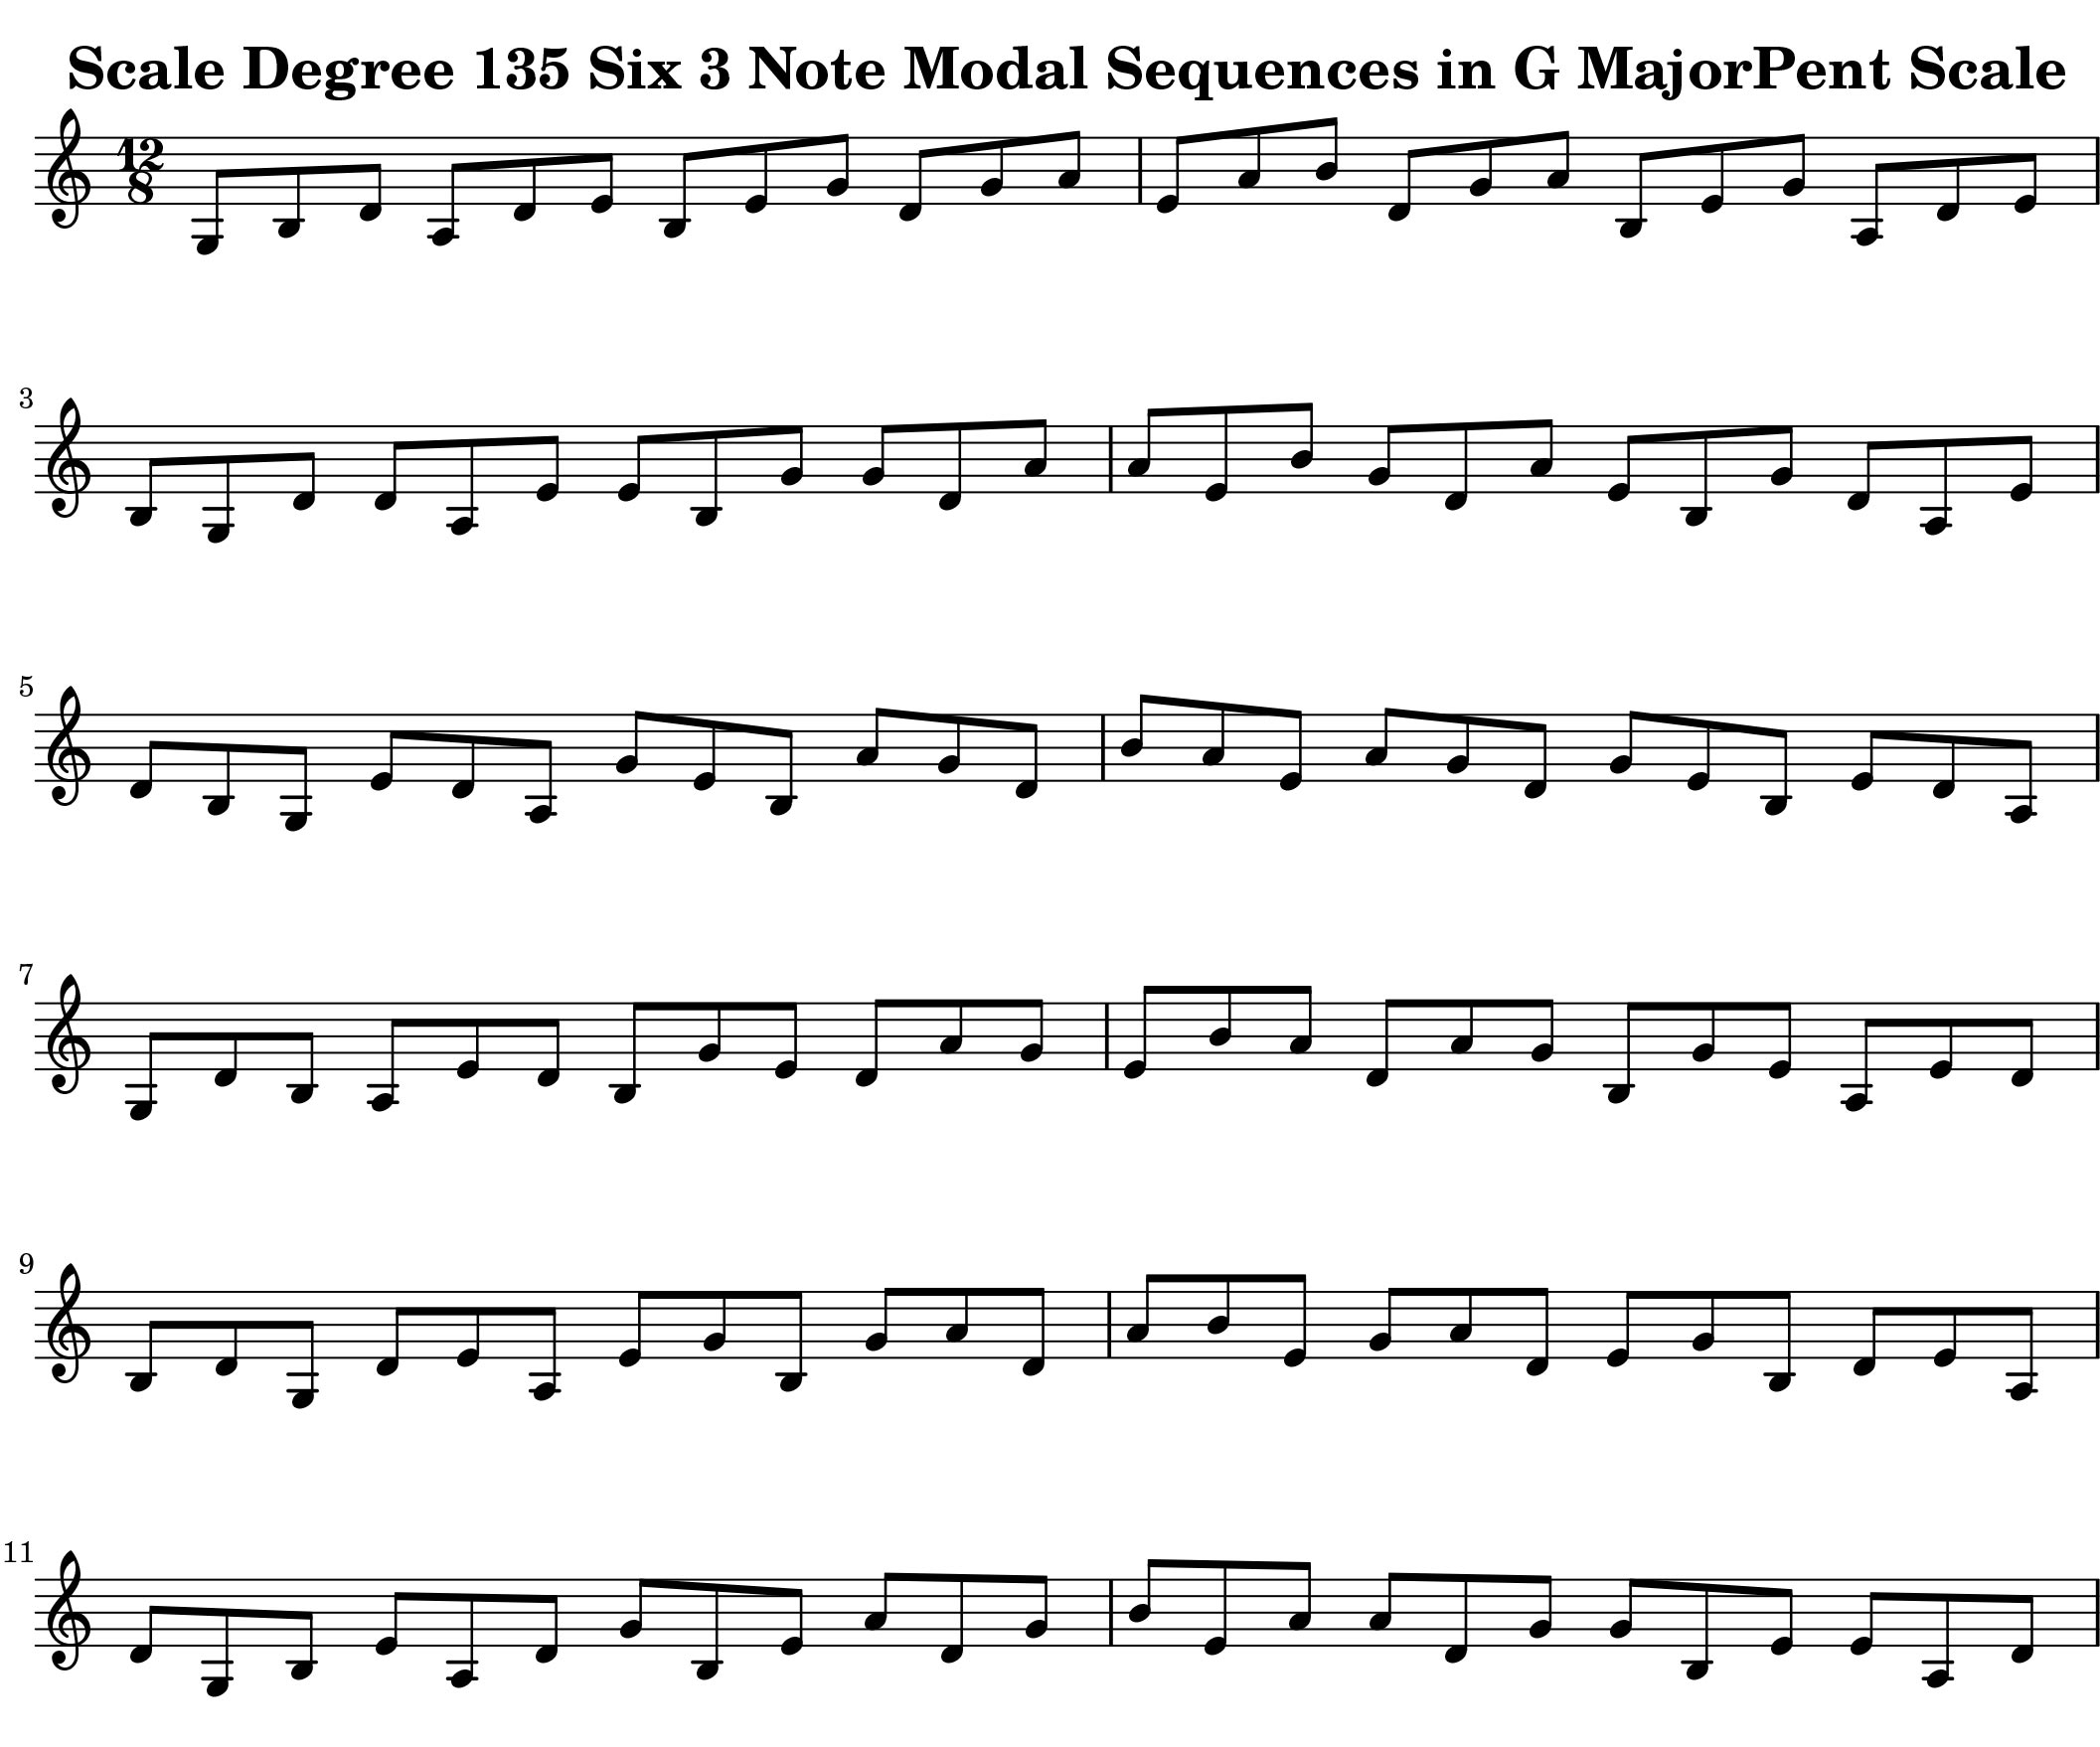 G Major Pentatonic Scale Modal Sequencing 3 Note Group 3 for all instrumentalist by Bruce Arnold for Muse Eek Publishing Company